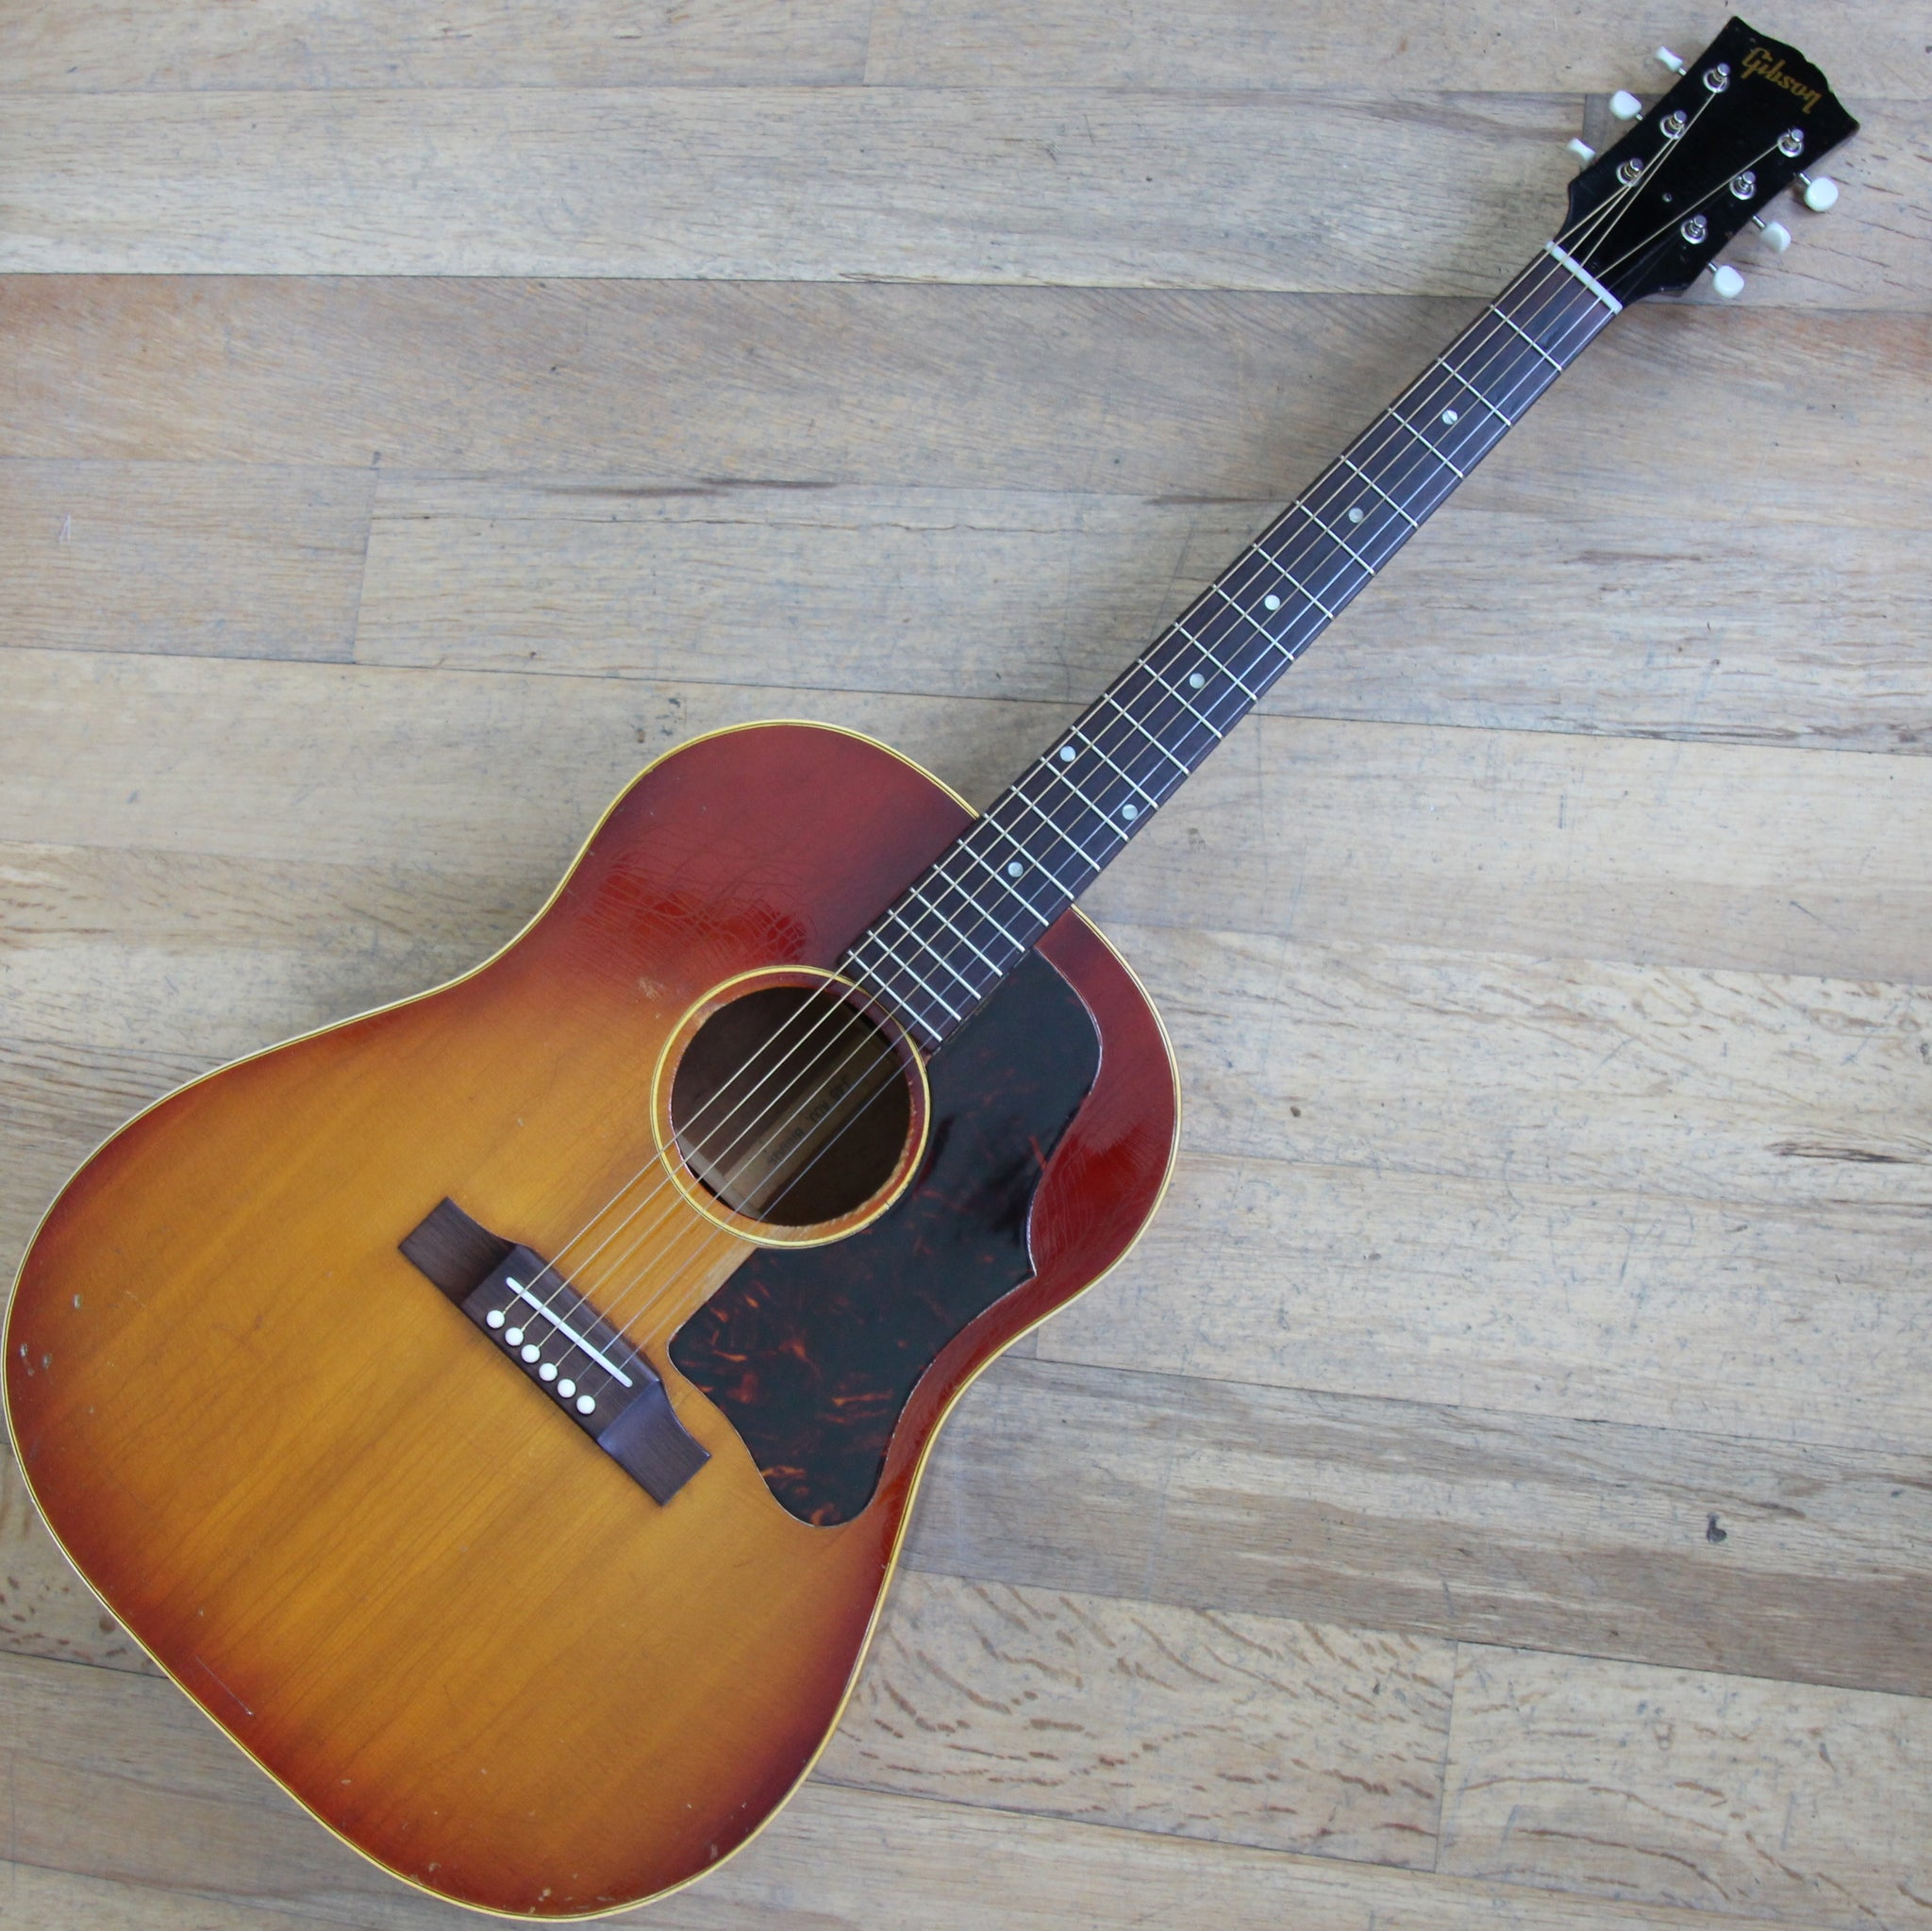 Products Page 3 - Shop or Sell Vintage Guitars at Black Book